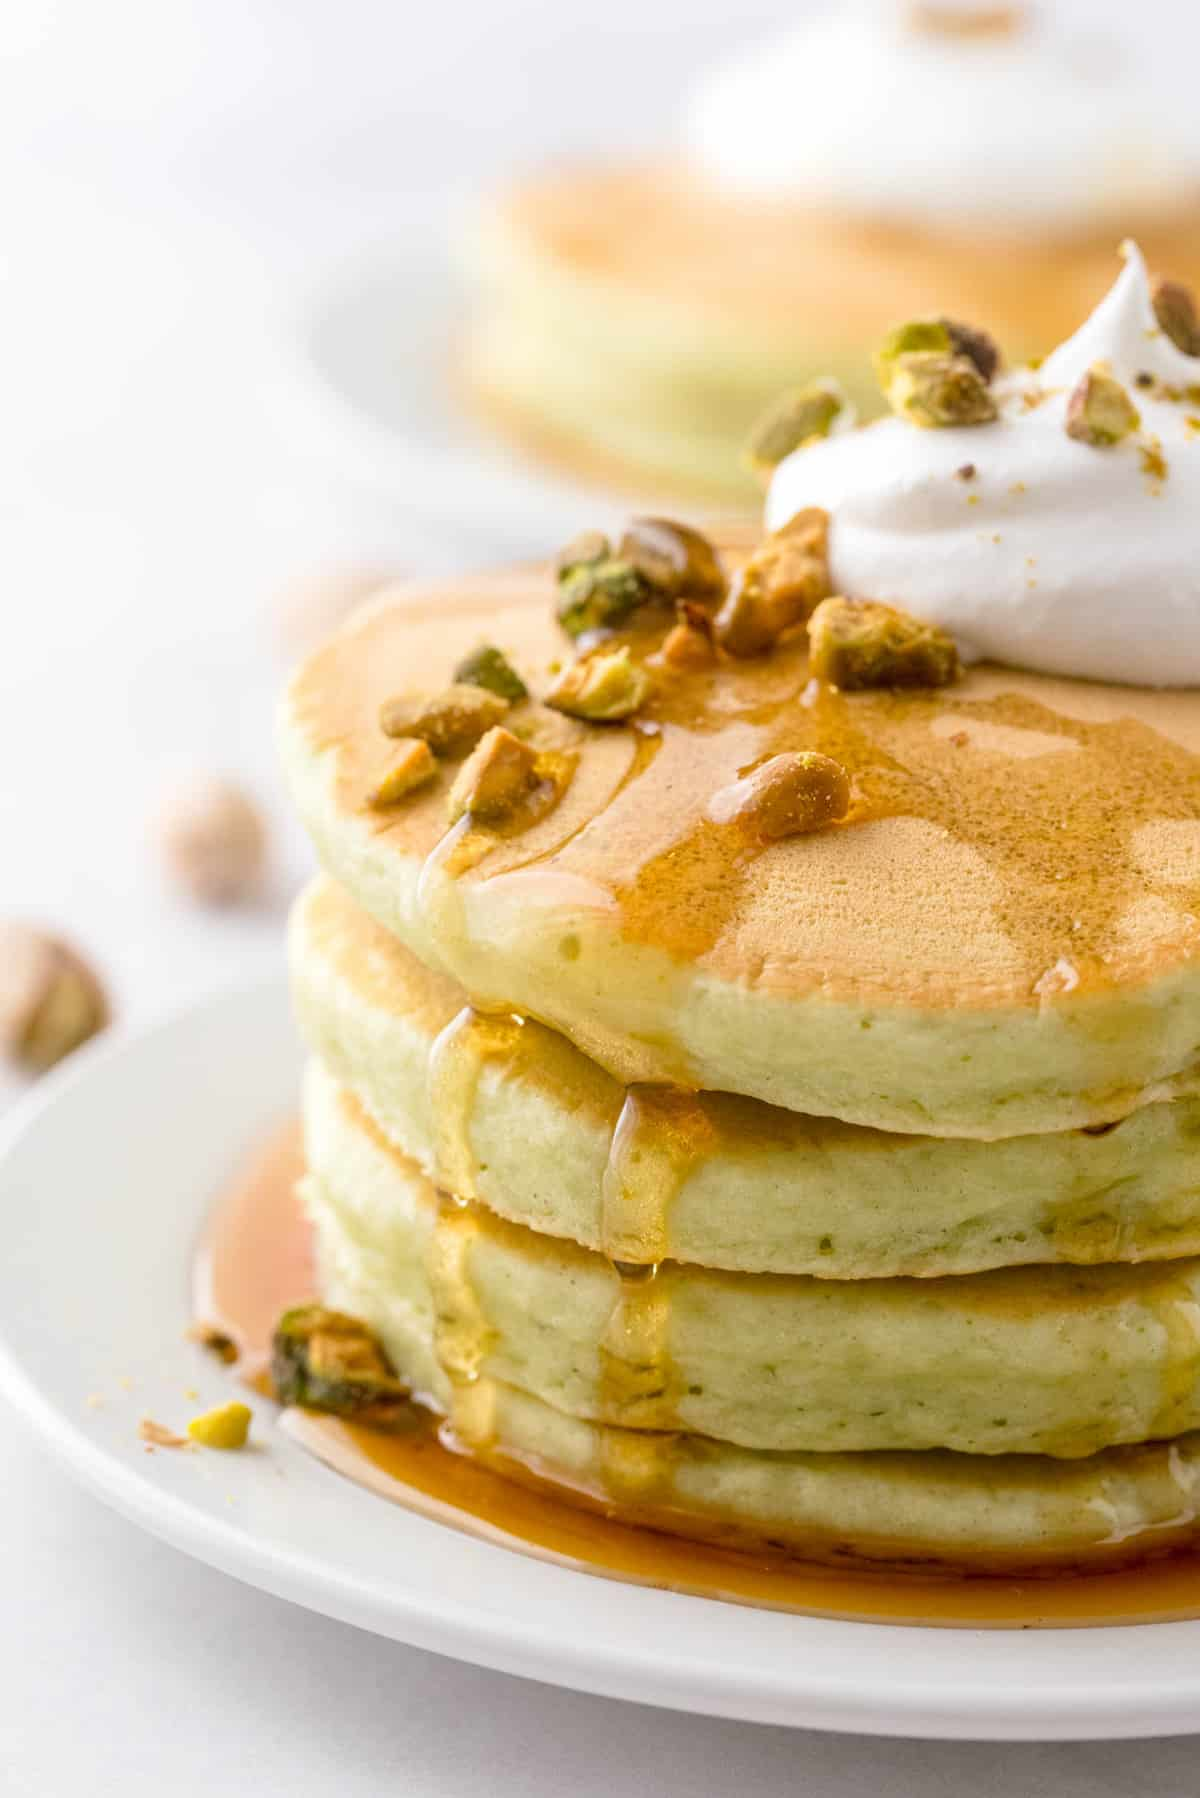 Short stack of light green pancakes, dripping with syrup and topped with pistachios.